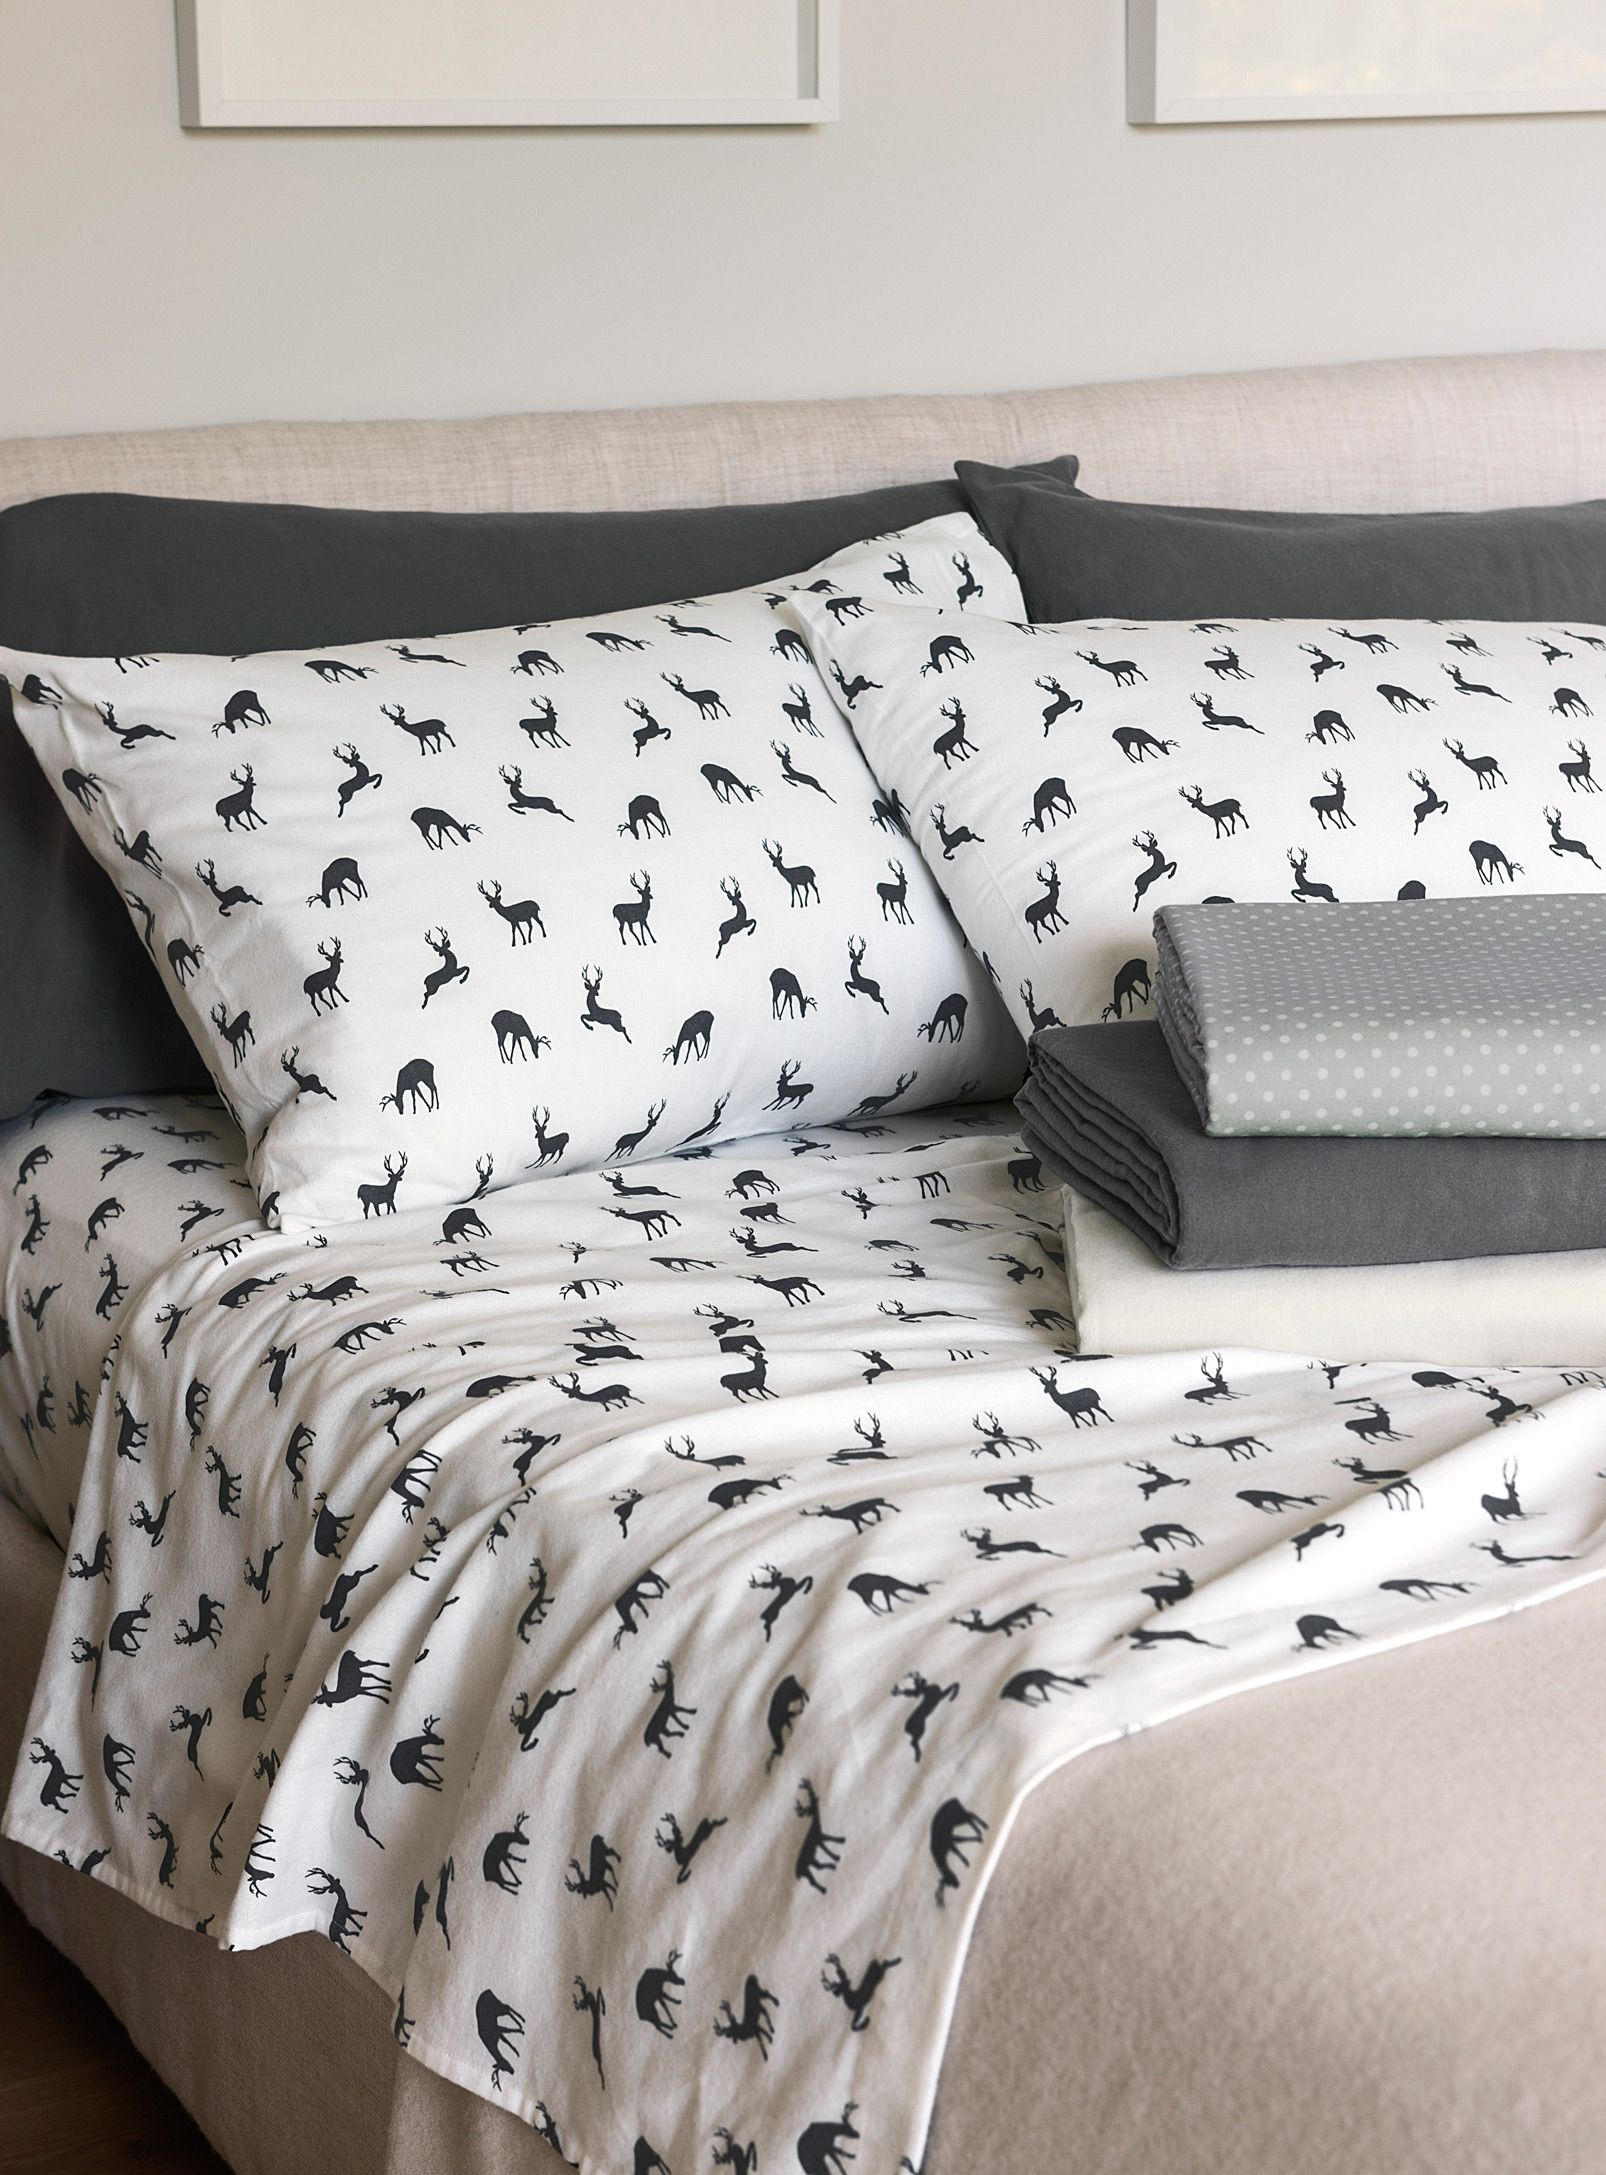 Flannel Bed Sheets Online In Canada Simons